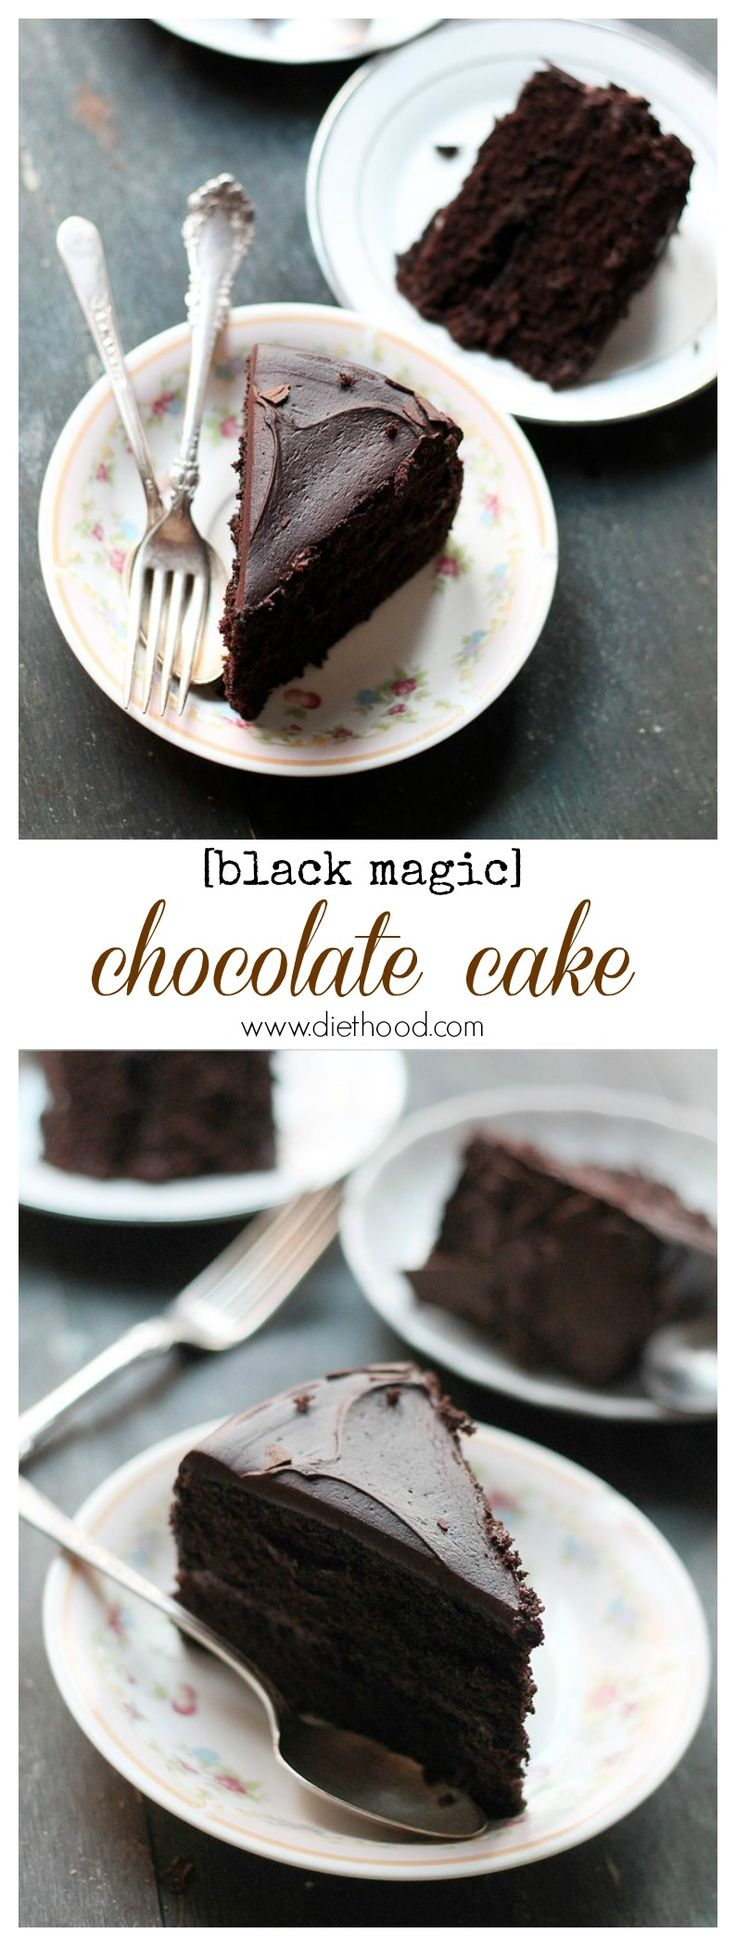 Black Magic Chocolate Cake | www.diethood.com | Moist, rich, and delicious dark chocolate cake perfect for any occasion! | #recipe #chocolate #cake